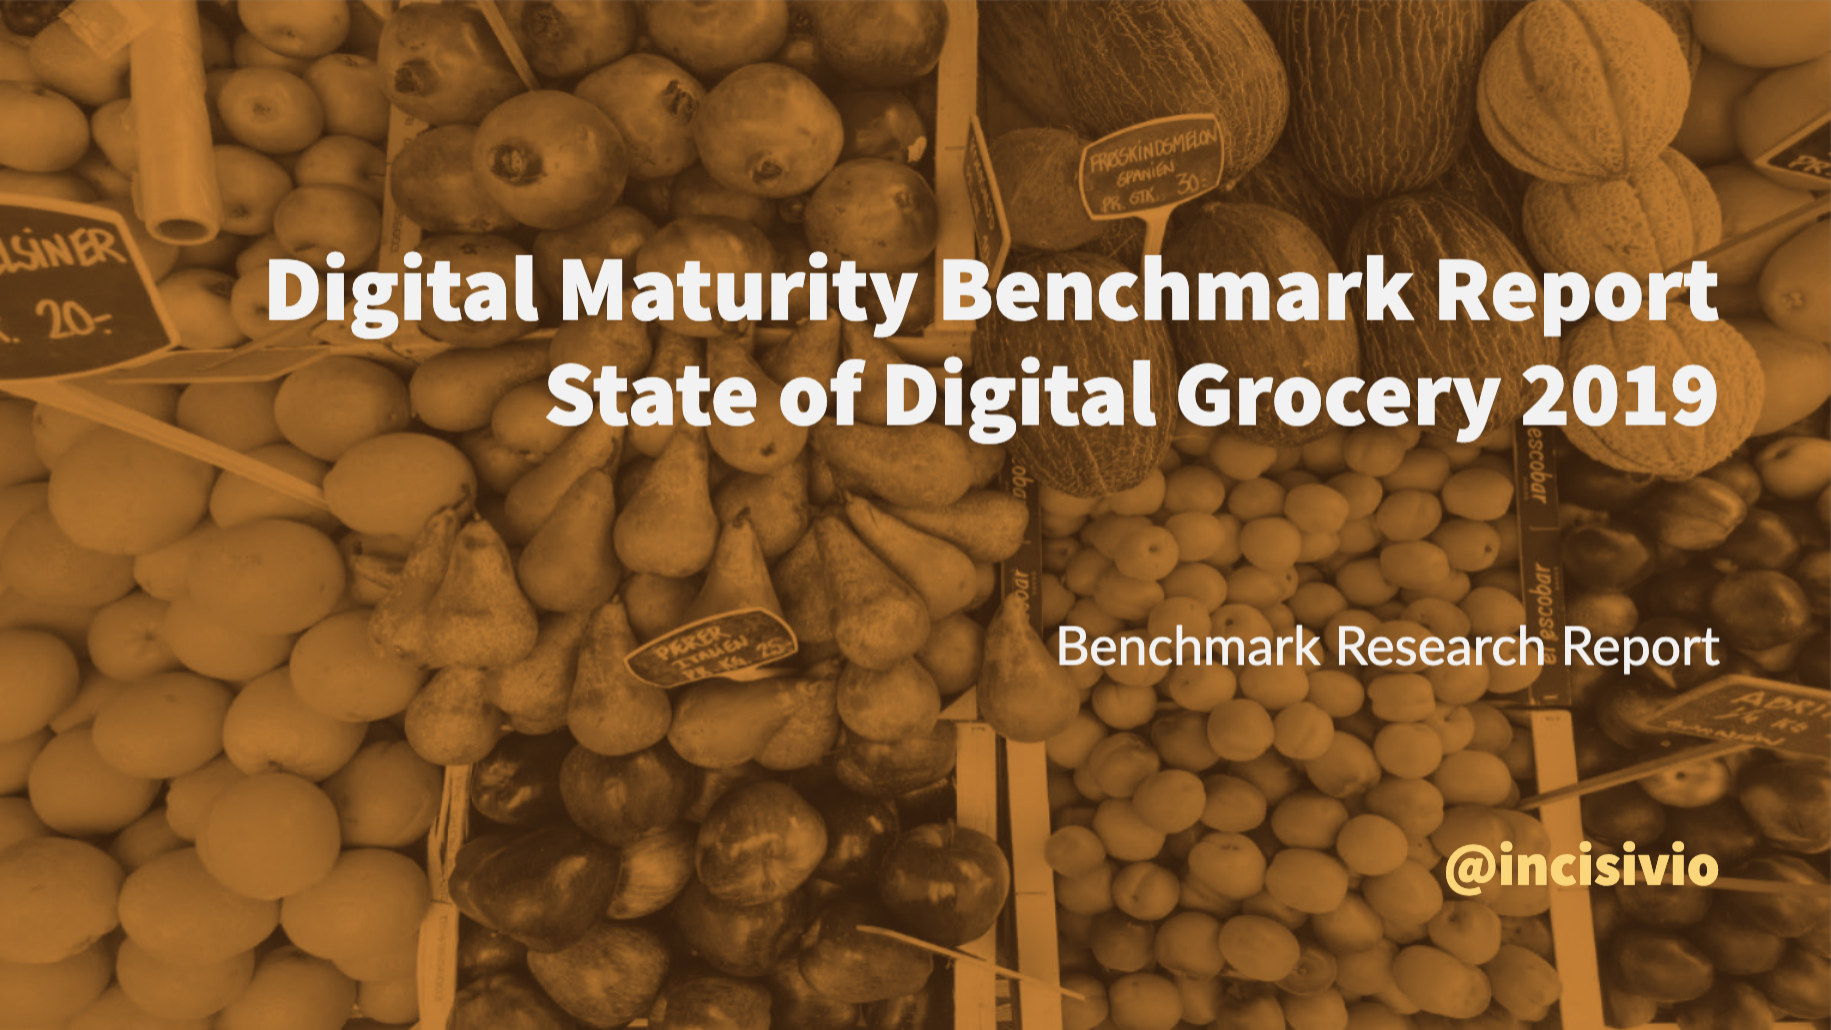 Benchmark Research Report